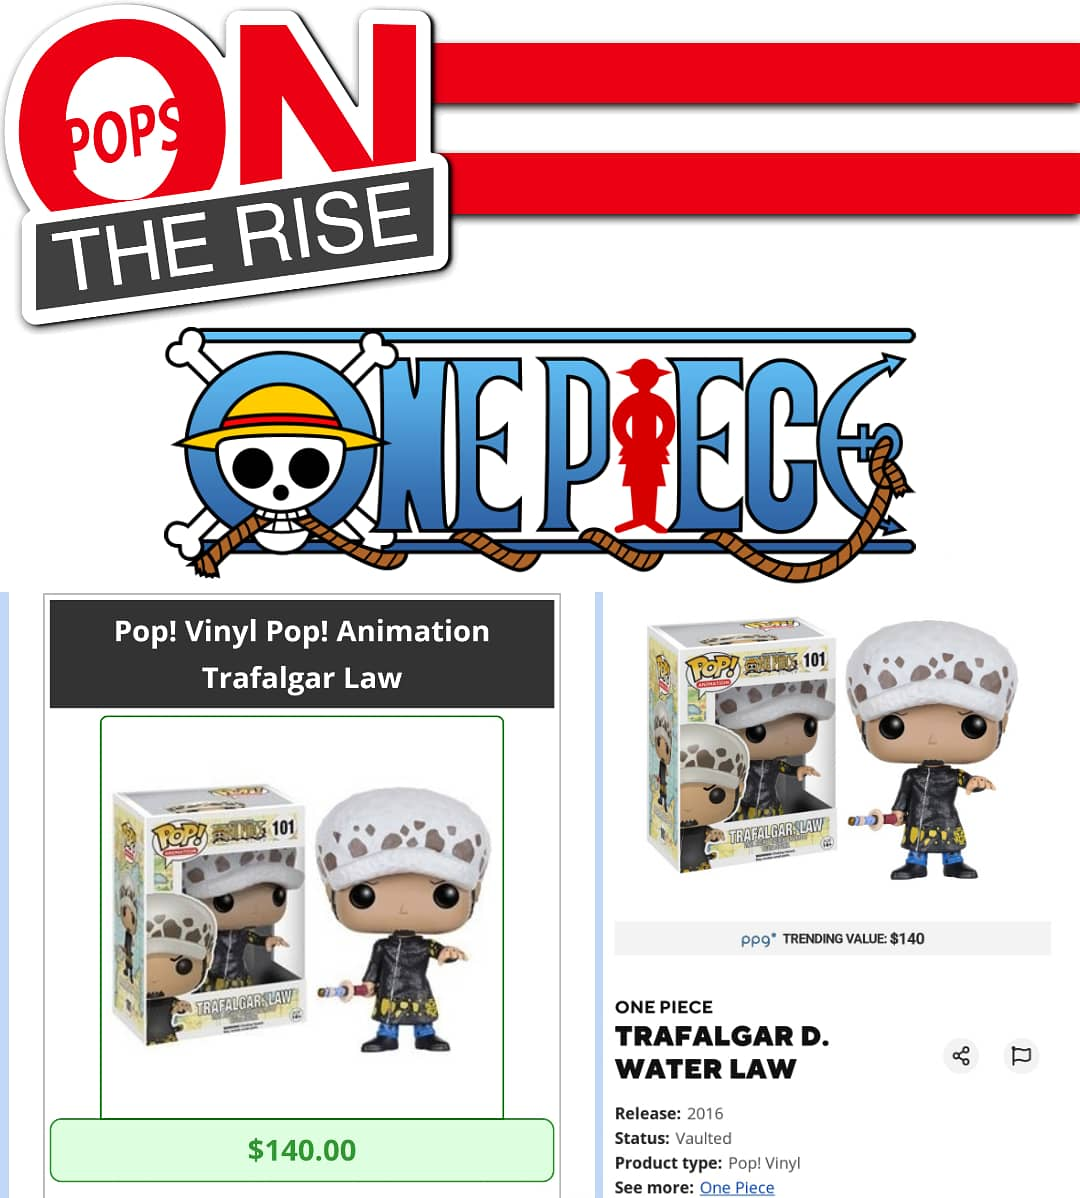 #Popsontherise One Piece: Trafalgar Law Current Value: $140 Release year: 2016 . ROOM A wanted Pirate by the Marines. With a huge bounty. Law has the biggest pop bounty in the one piece world! Law keeps going up in value there might be no stopping him with that strong devil fruitpic.twitter.com/mbFYSWUxjy